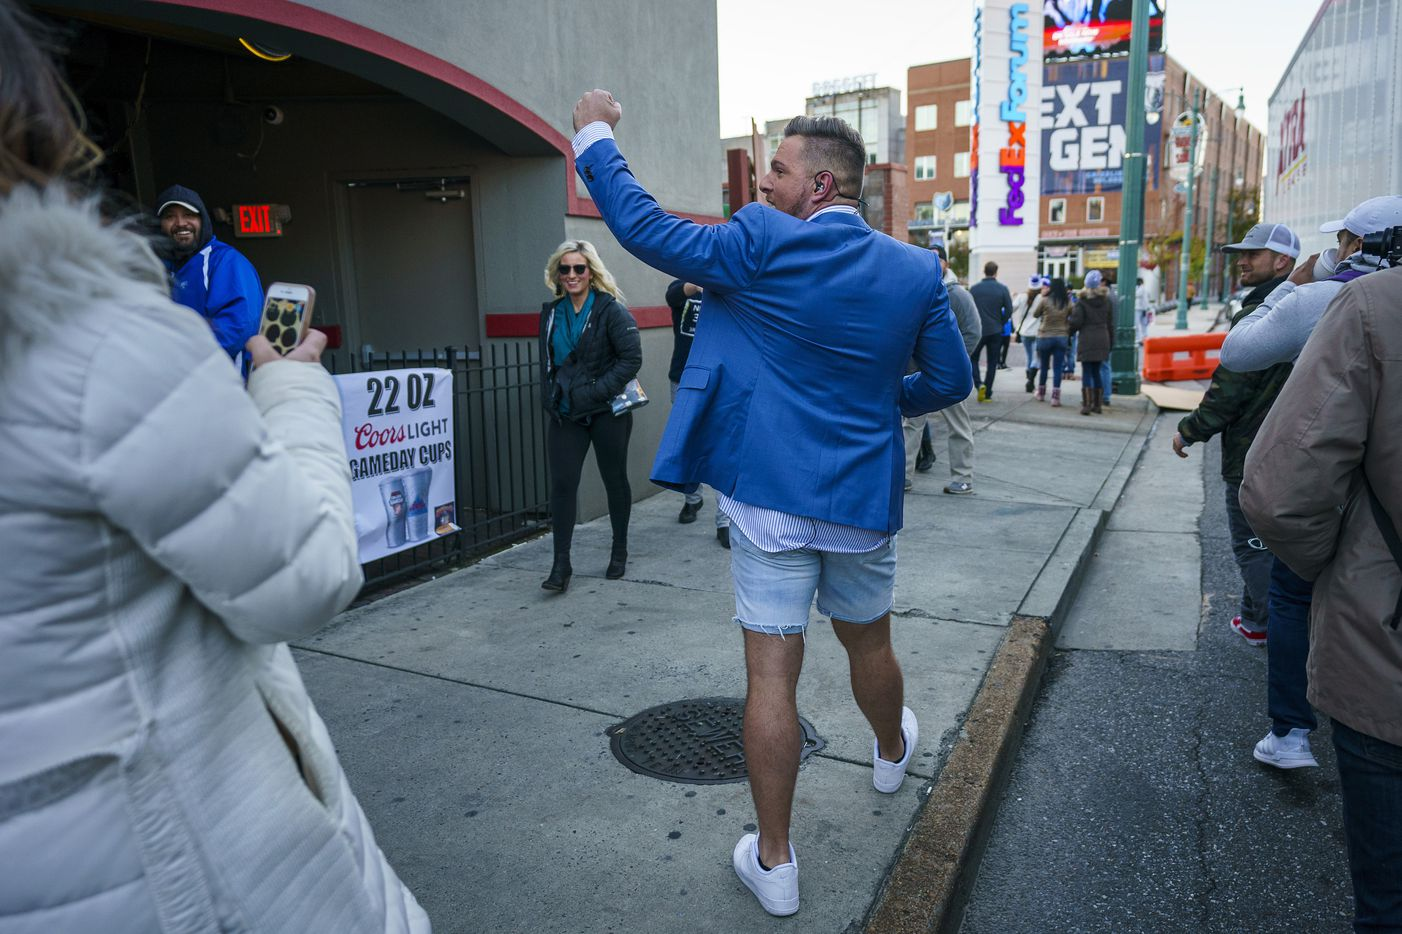 Pat McAfee waves to fans during ESPN College GameDay on Beale Street before an NCAA football game  on Saturday, Nov. 2, 2019, in Memphis, Tenn.